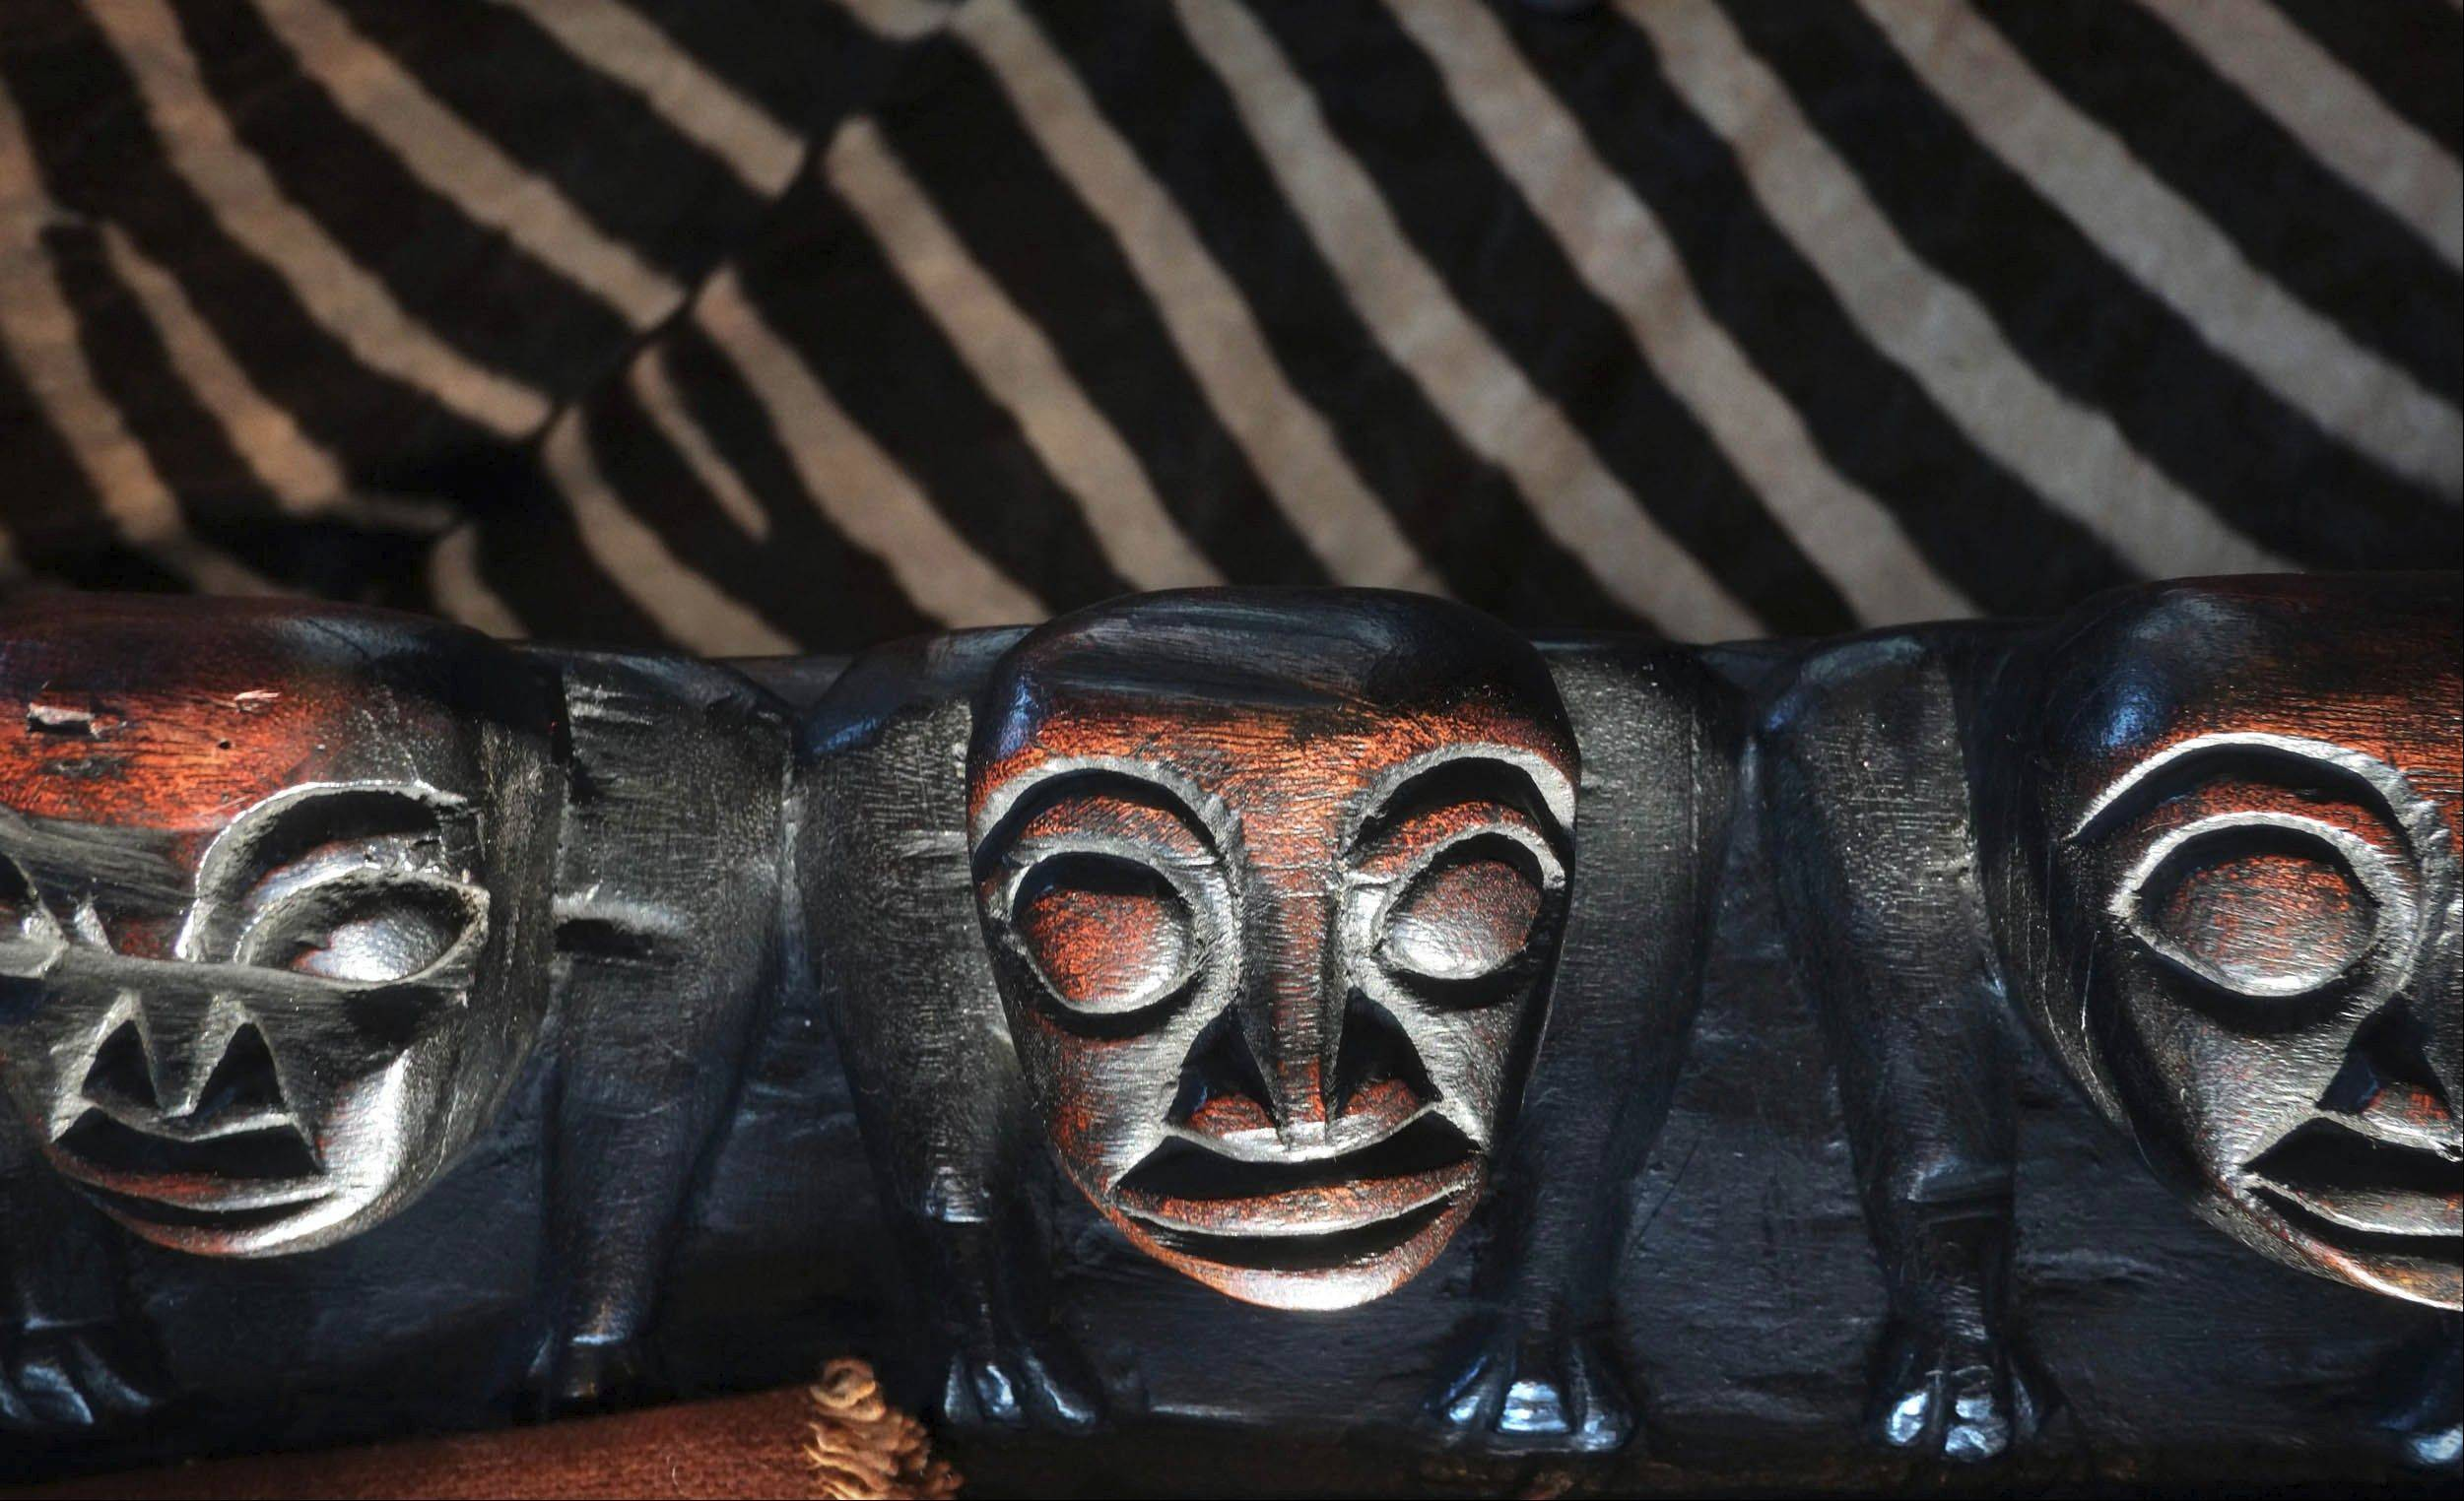 An antique pygmy bed from Cameroon, with carved faces along its edge, now serves as a coffeetable.